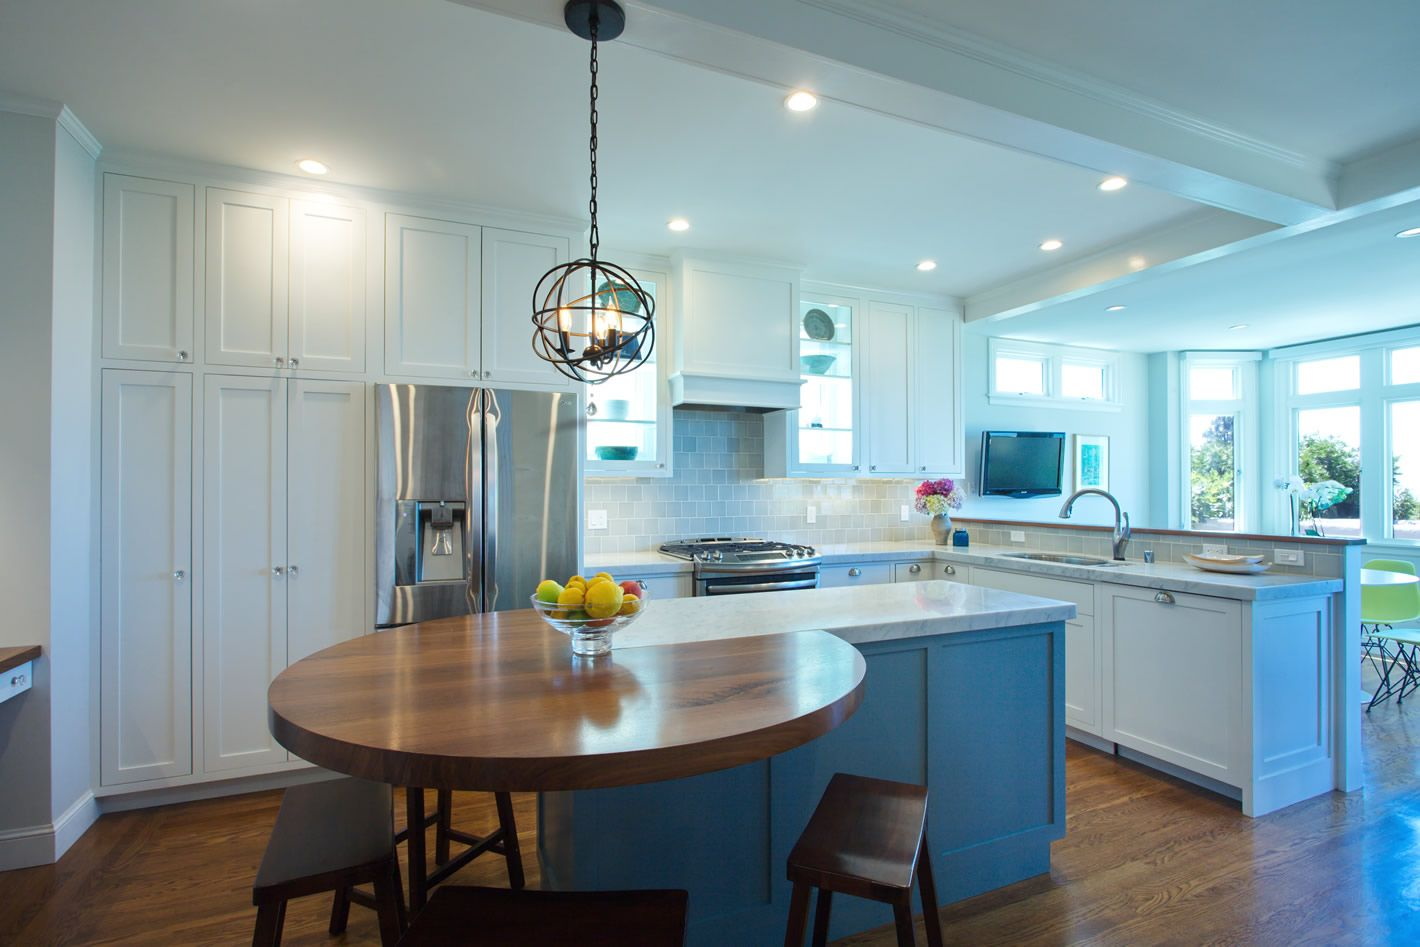 Transitional, shaker style with circular eating bar/island unit ...